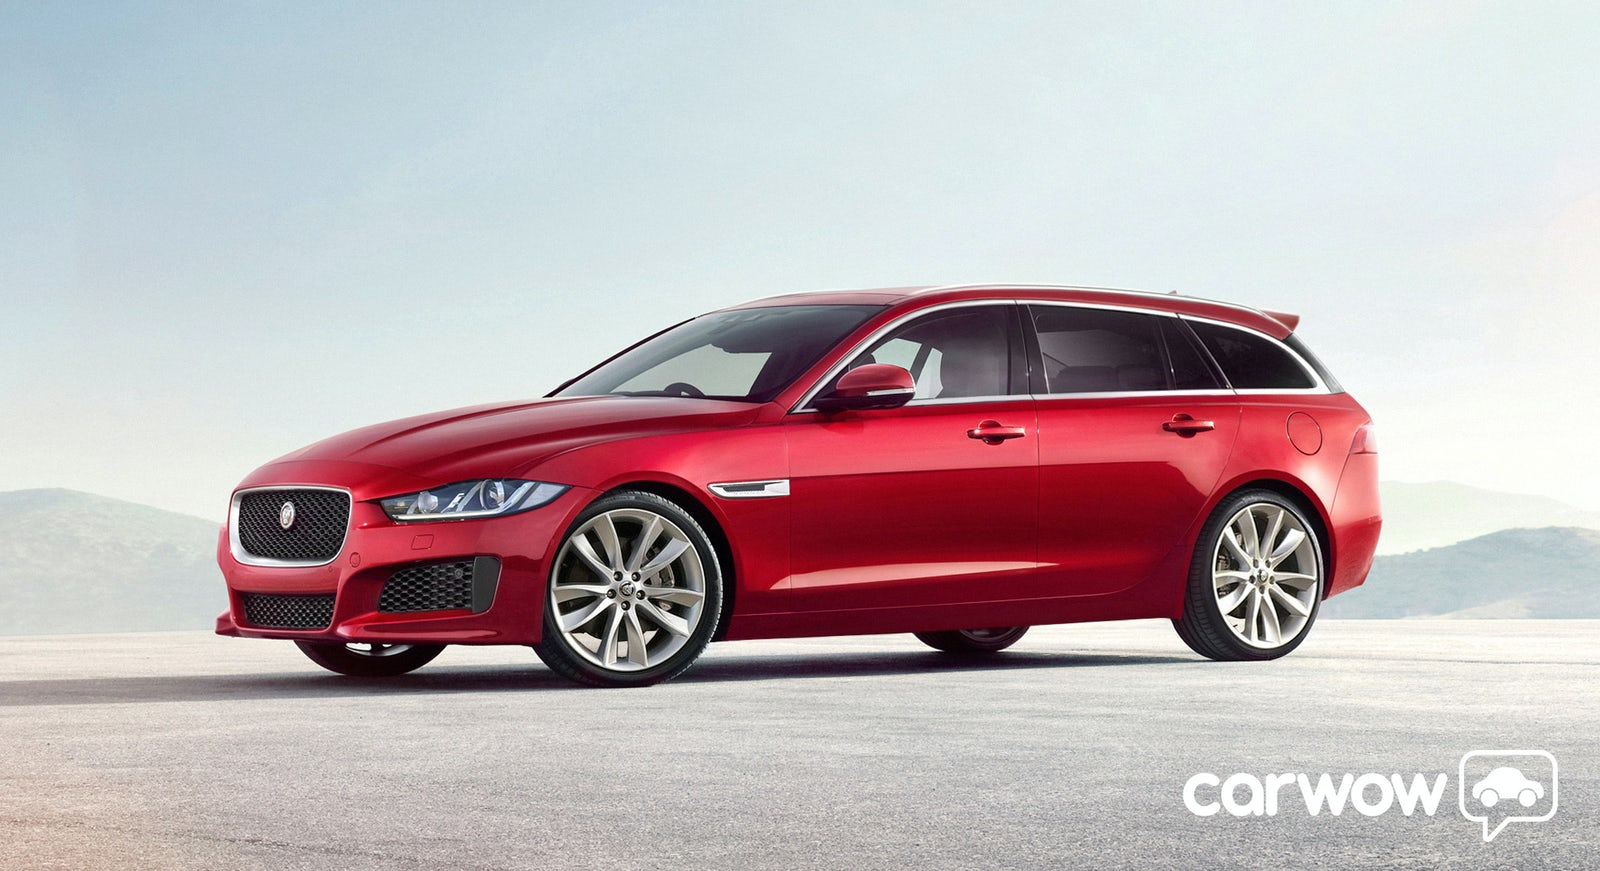 New Jaguar XE Estate price, specs and release date | carwow